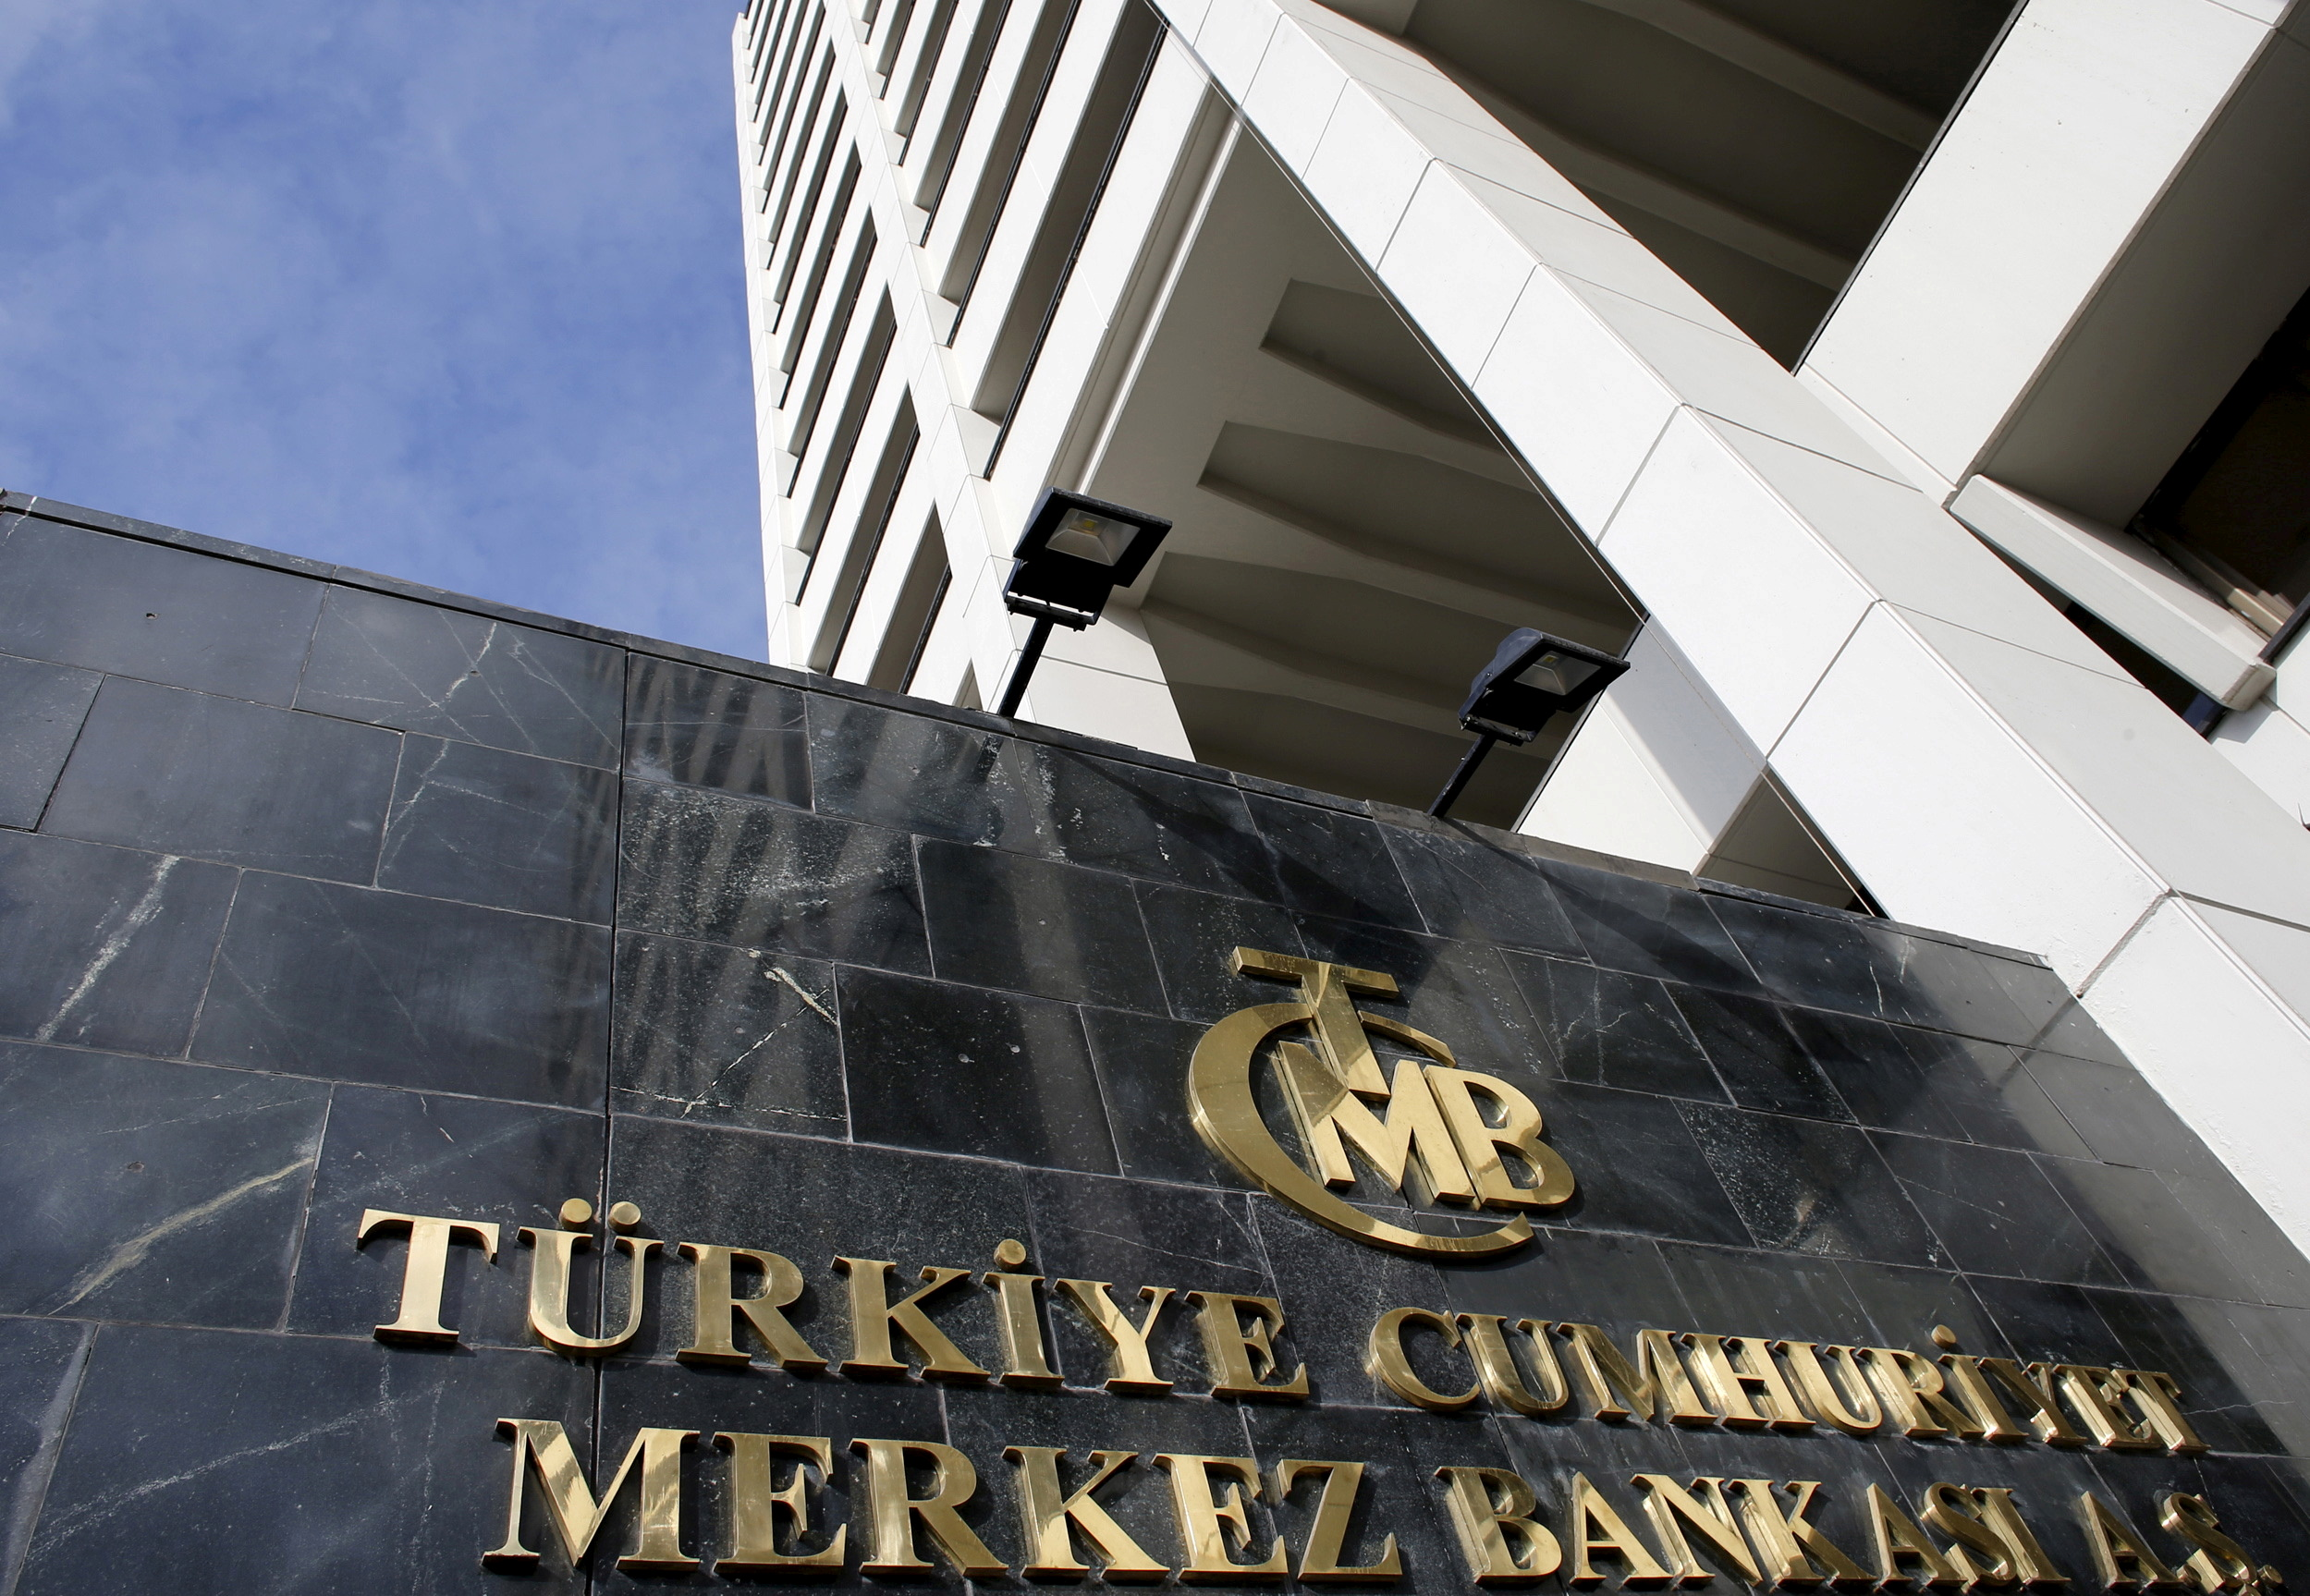 Turkey's Central Bank headquarters is seen in Ankara, Turkey in this January 24, 2014 file photo. REUTERS/Umit Bektas